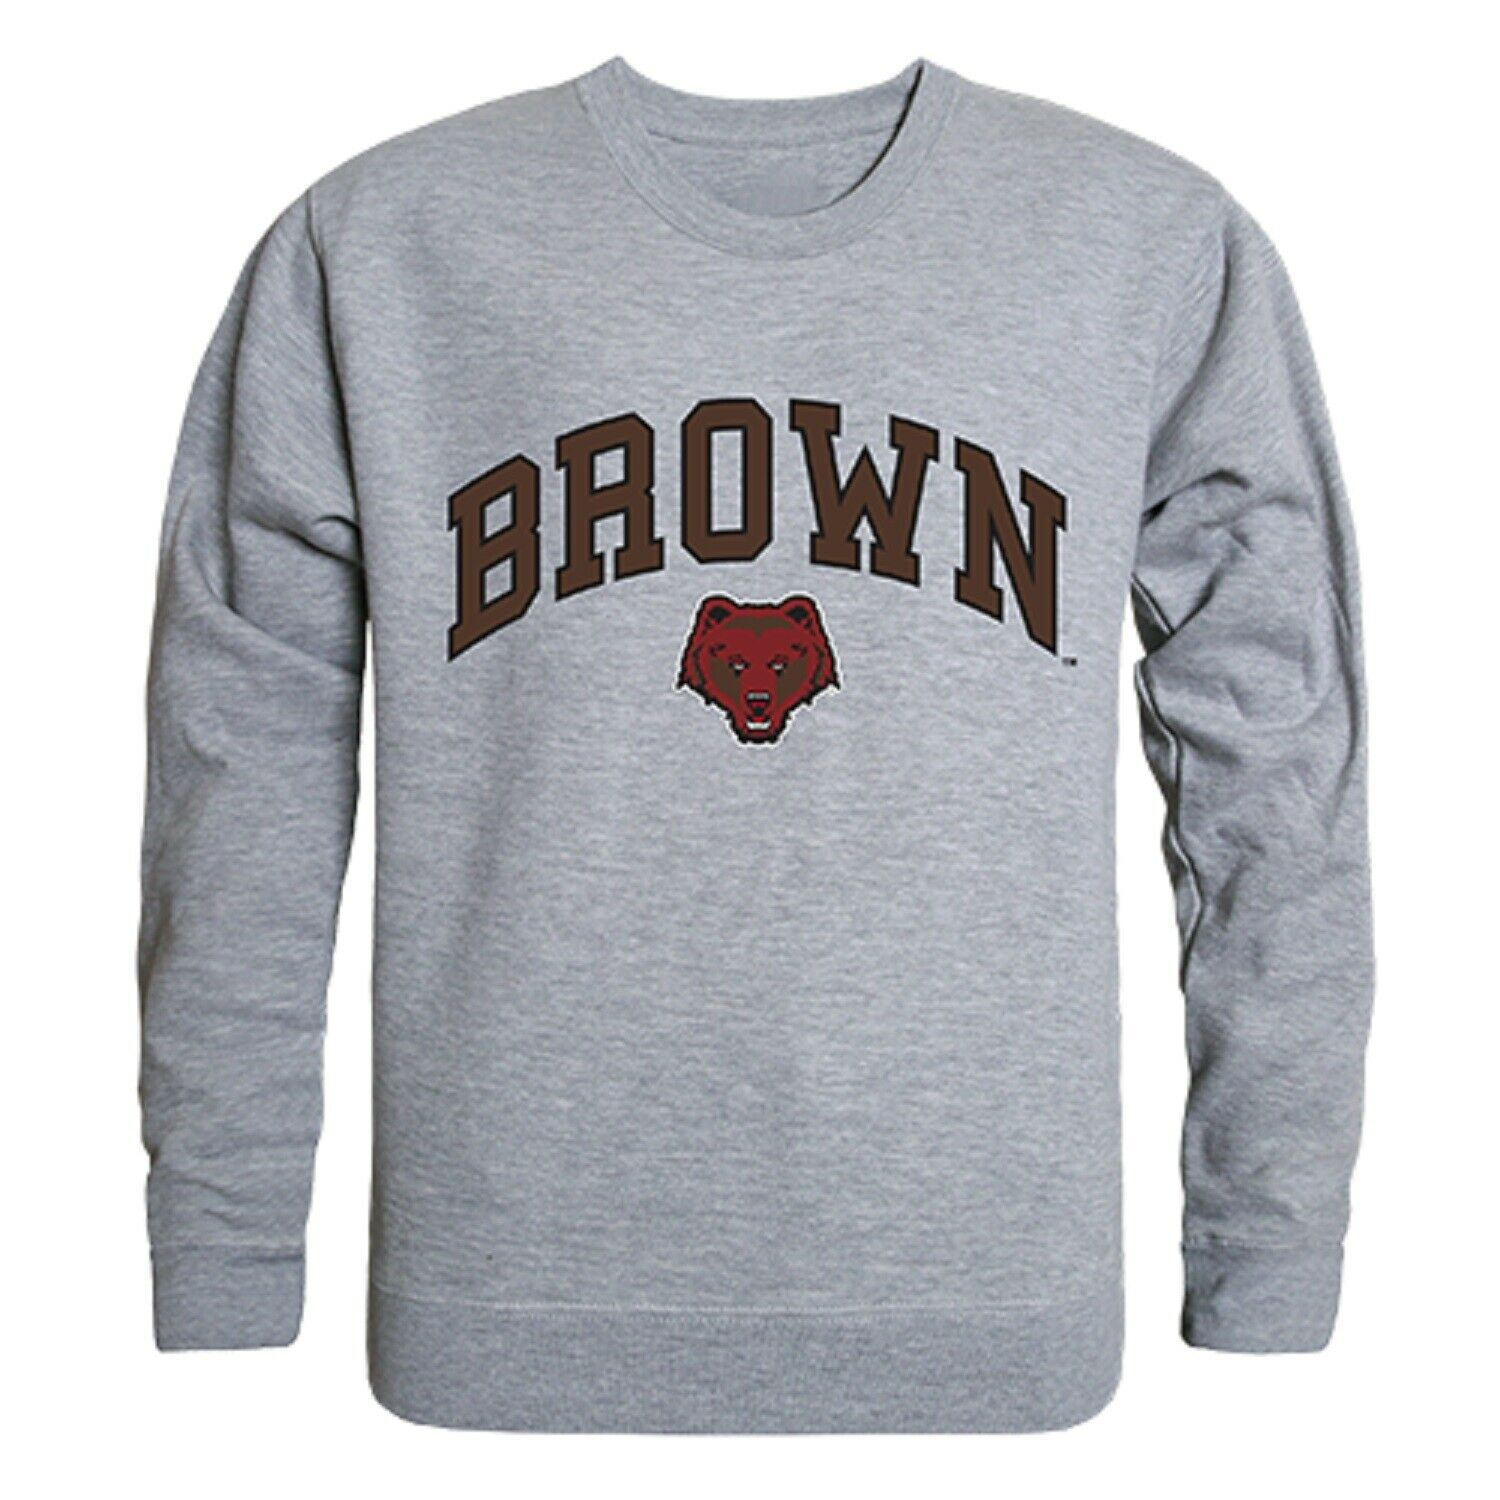 Brown University Bears BU Sweater - Officially Licensed